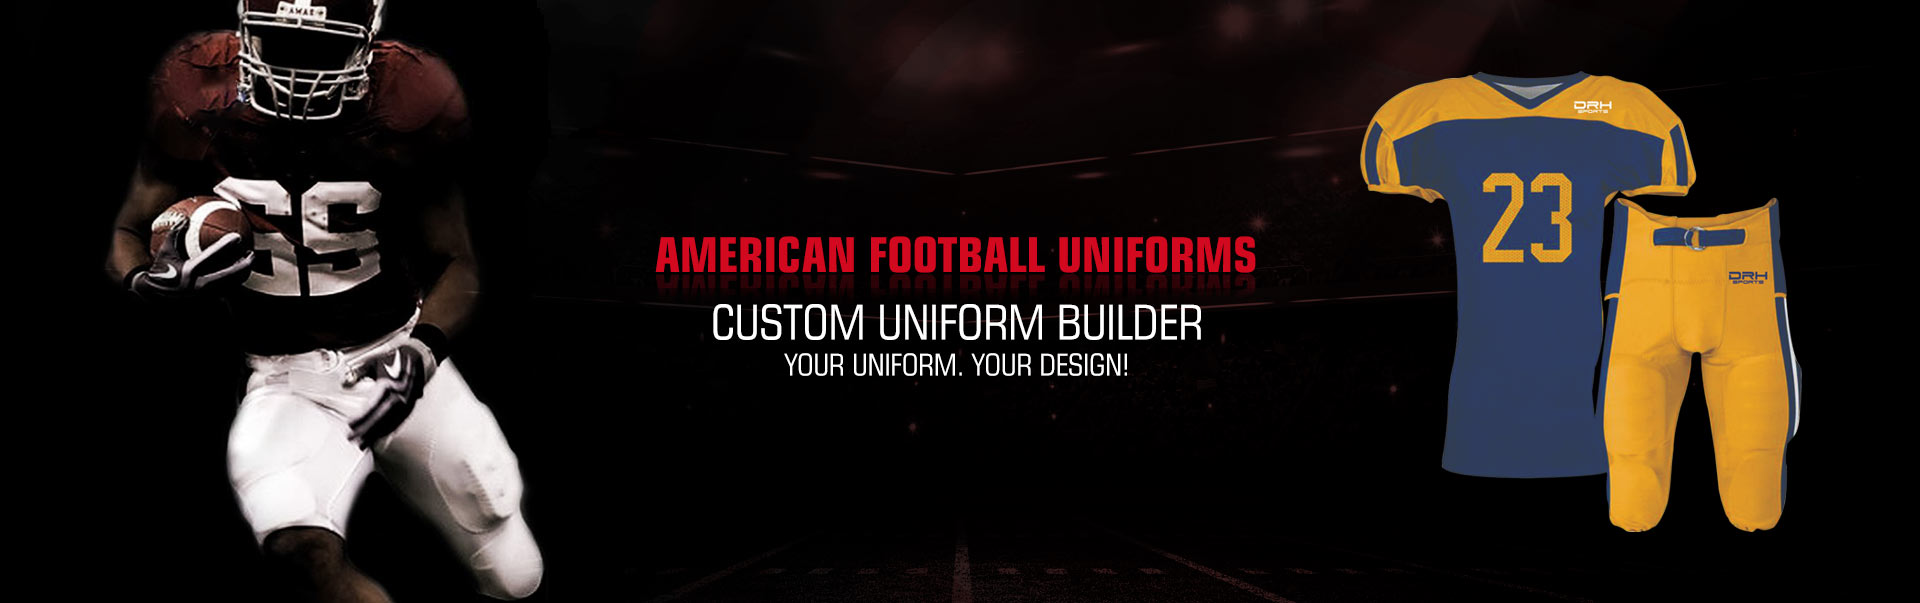 American Football Uniform Wholesaler, Suppliers in Luxembourg